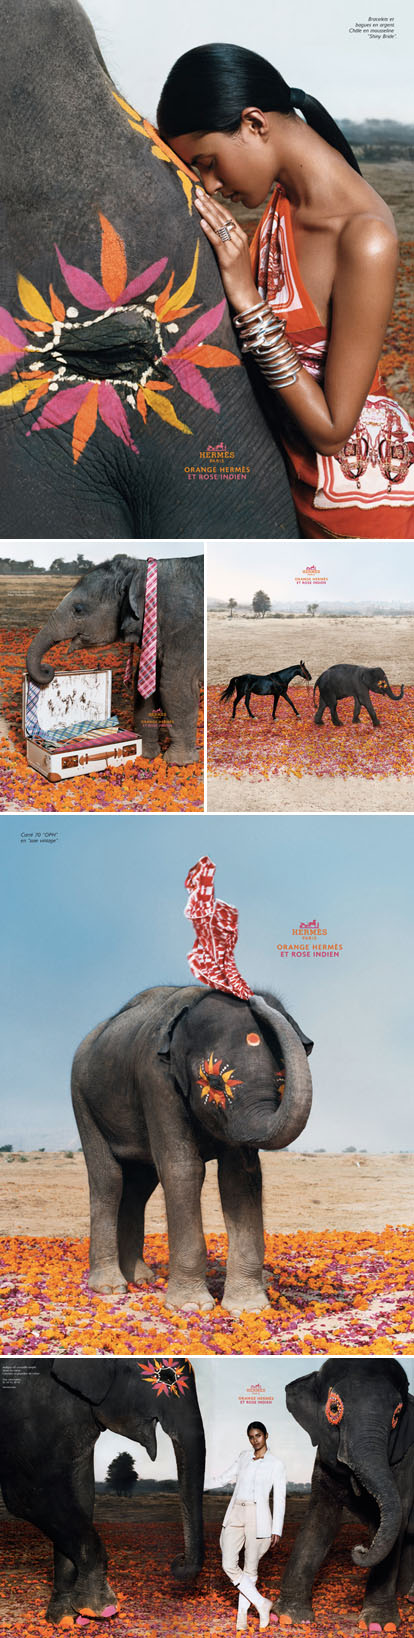 """Hermes Orange, India Pink"" ad campaign"